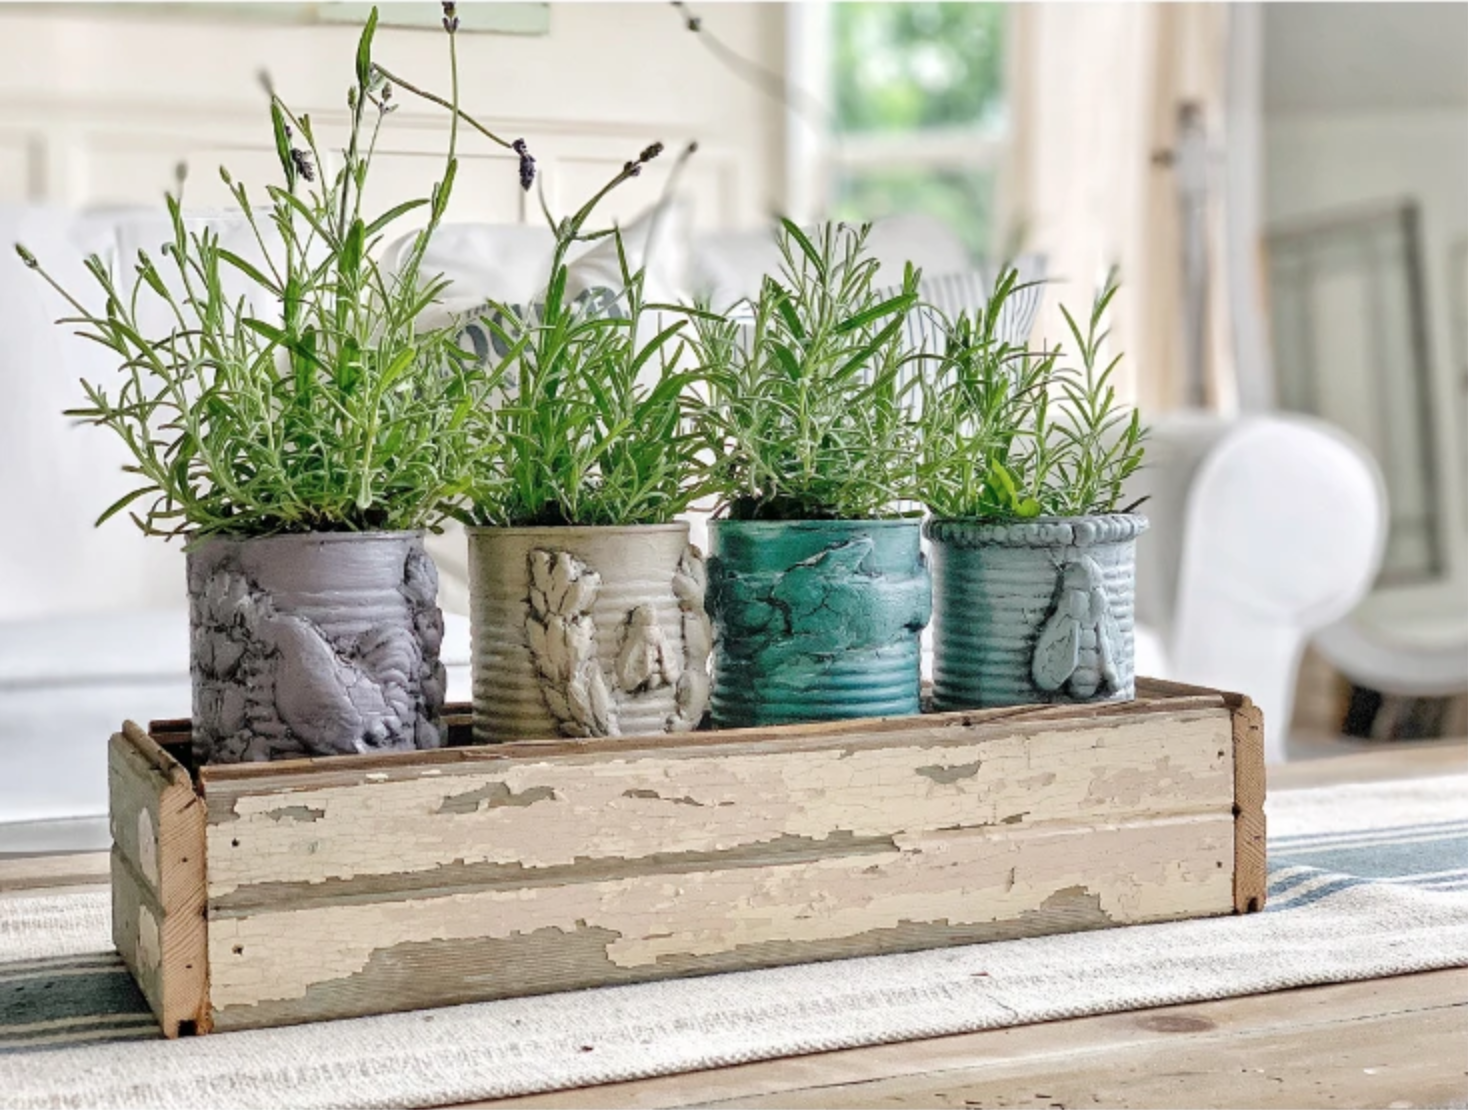 Upcycle tin can idea as planters with IOD moulds